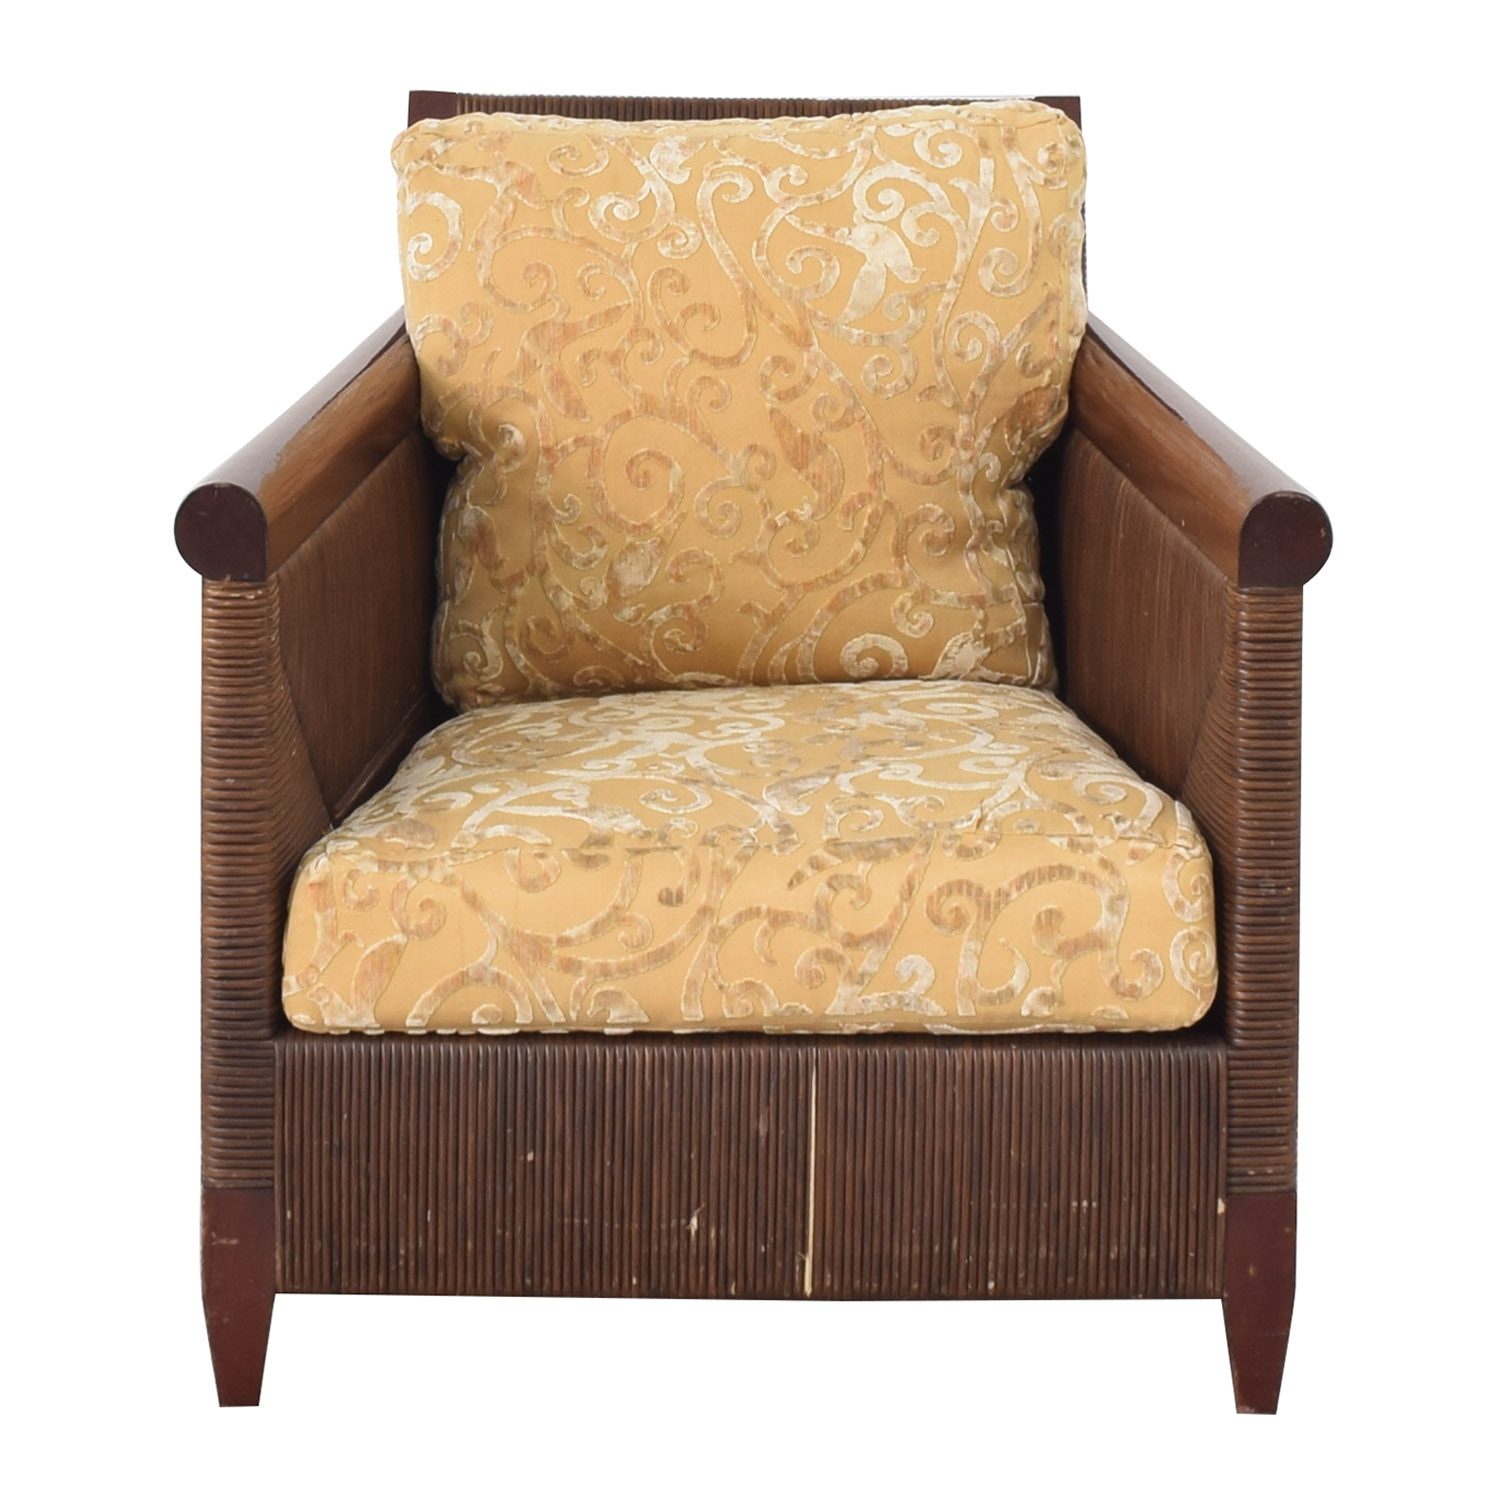 Donghia Donghia by John Hutton Mahogany and Wicker Lounger price